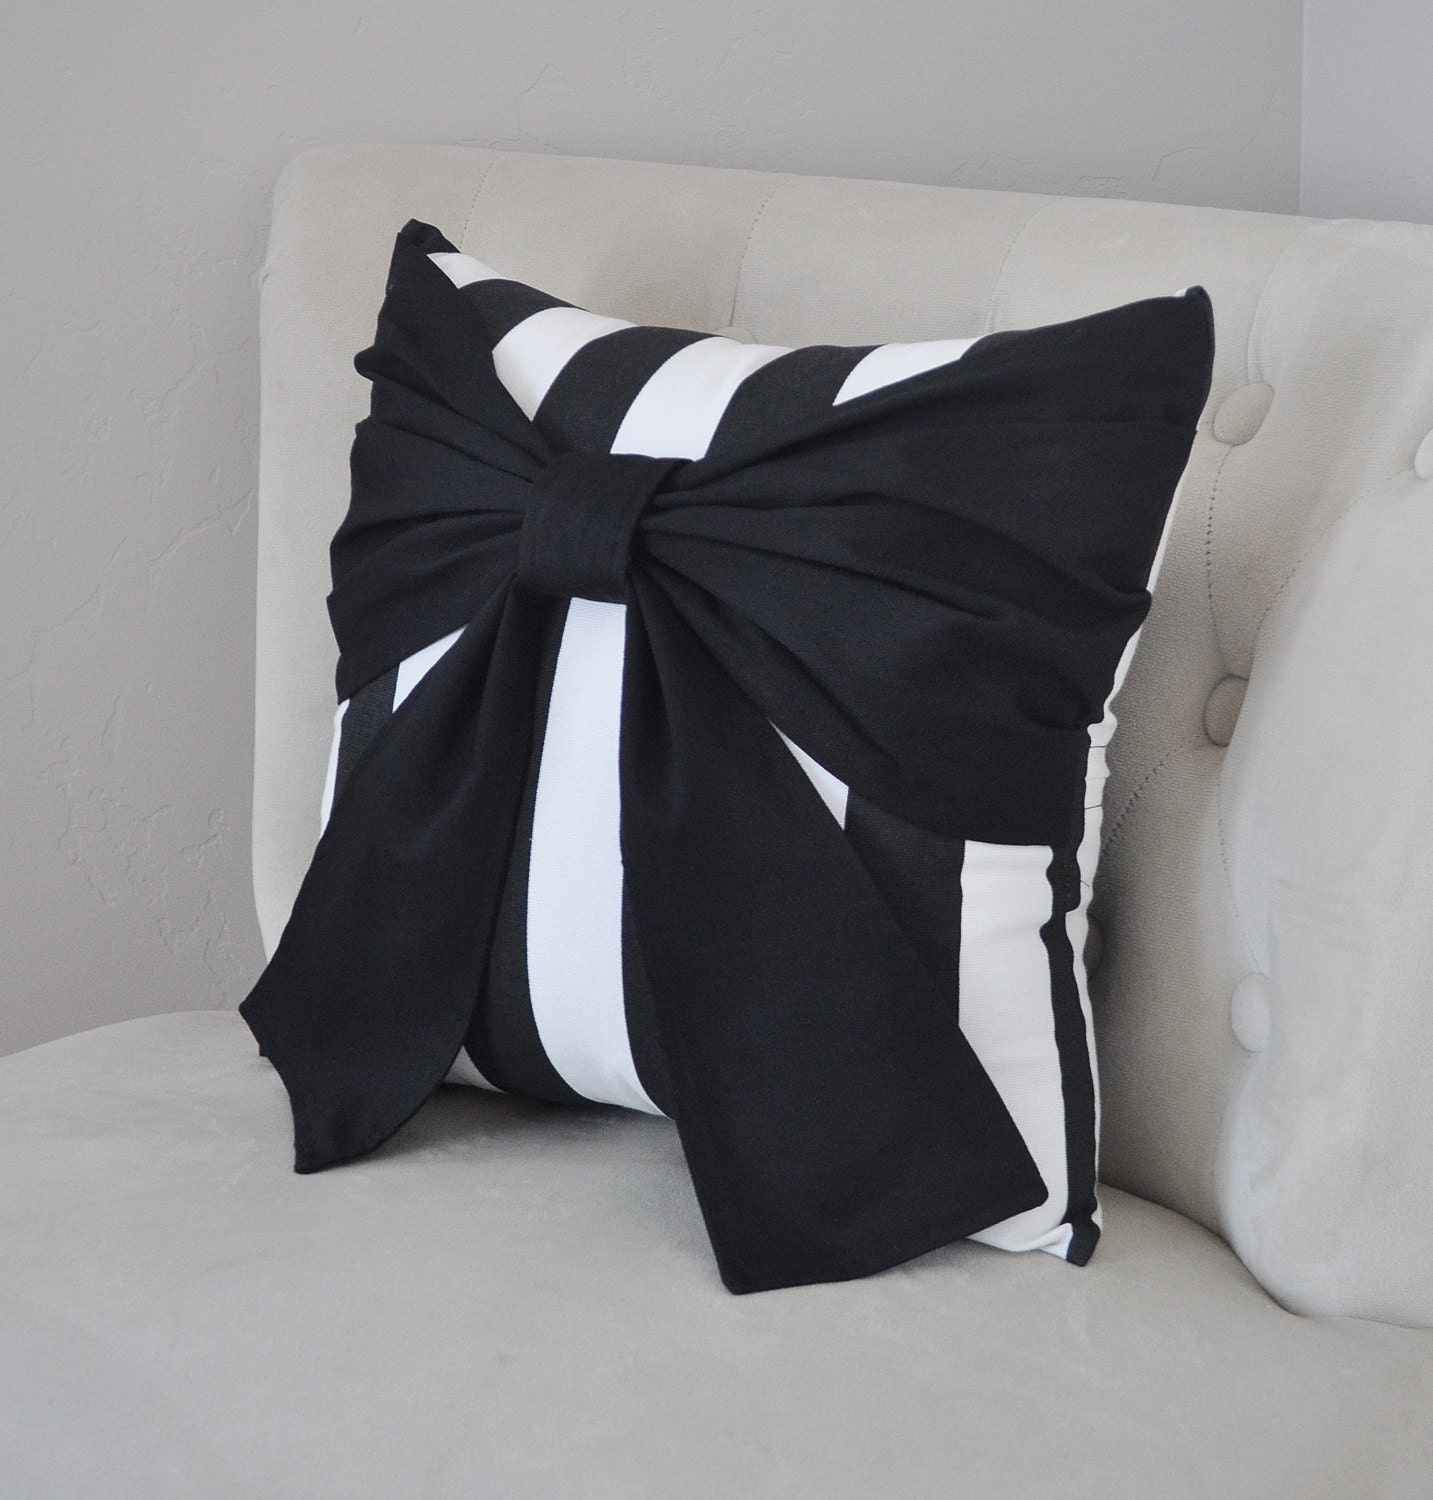 Throw Pillow With Bow : Throw Pillow Black Bow on Black and White Stripe Pillow 14x14